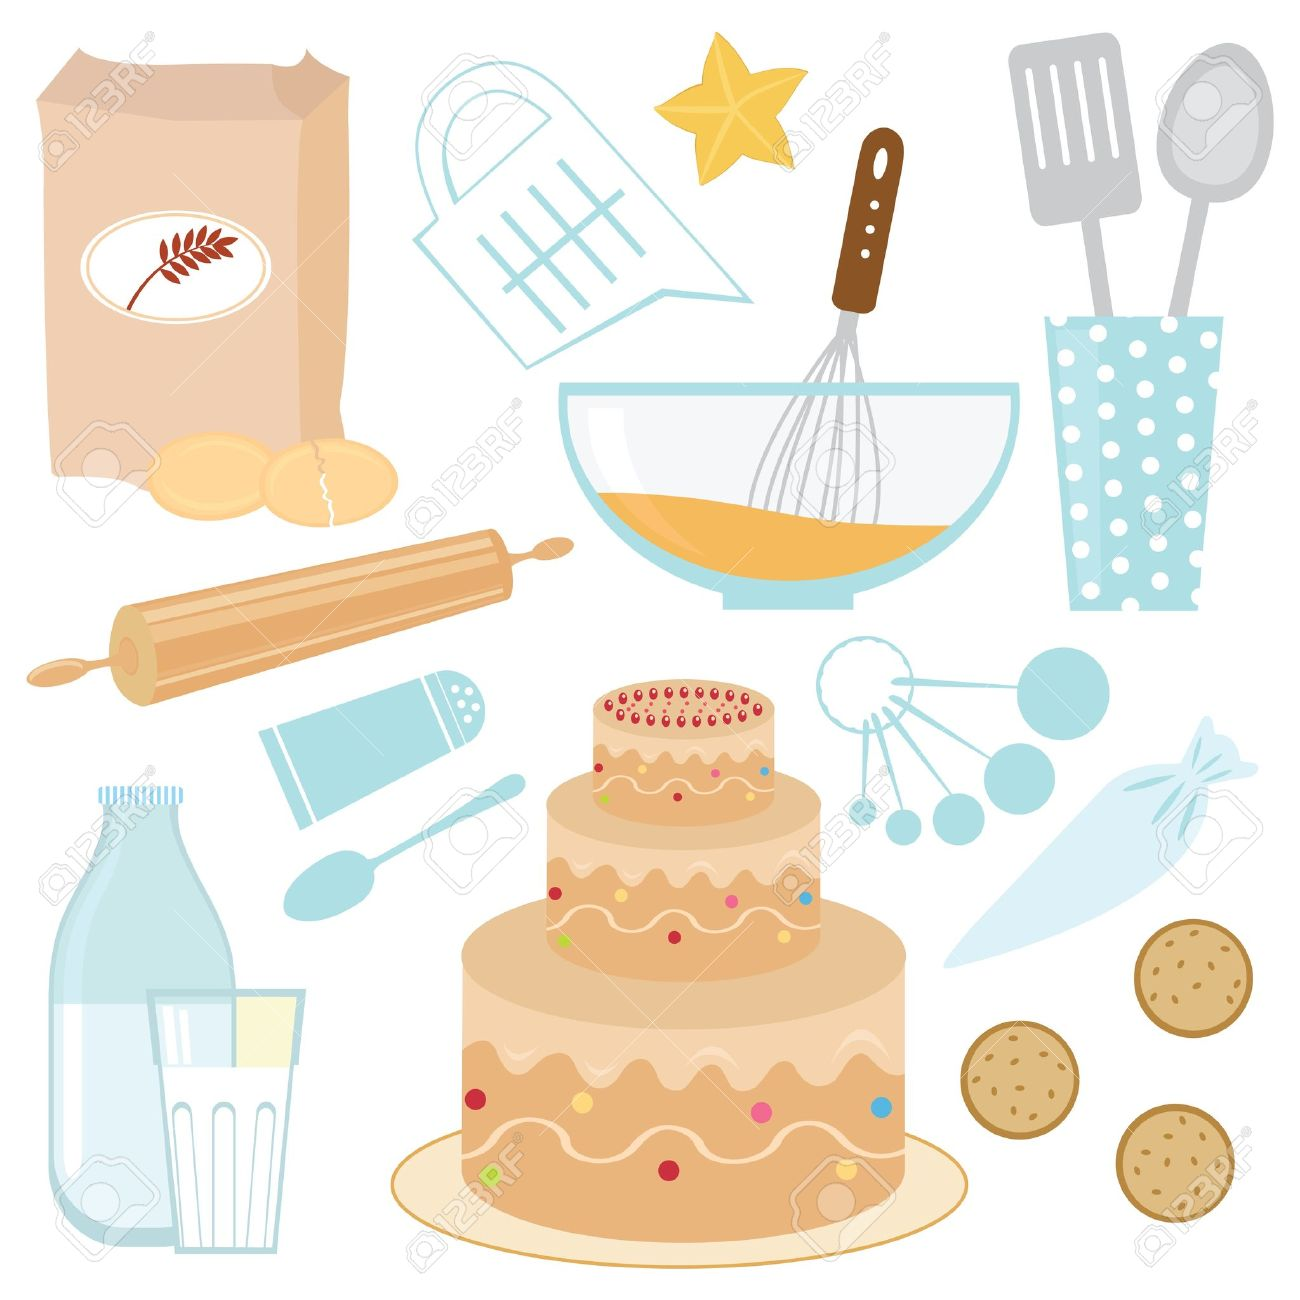 Baking A Cake Royalty Free Cliparts, Vectors, And Stock.